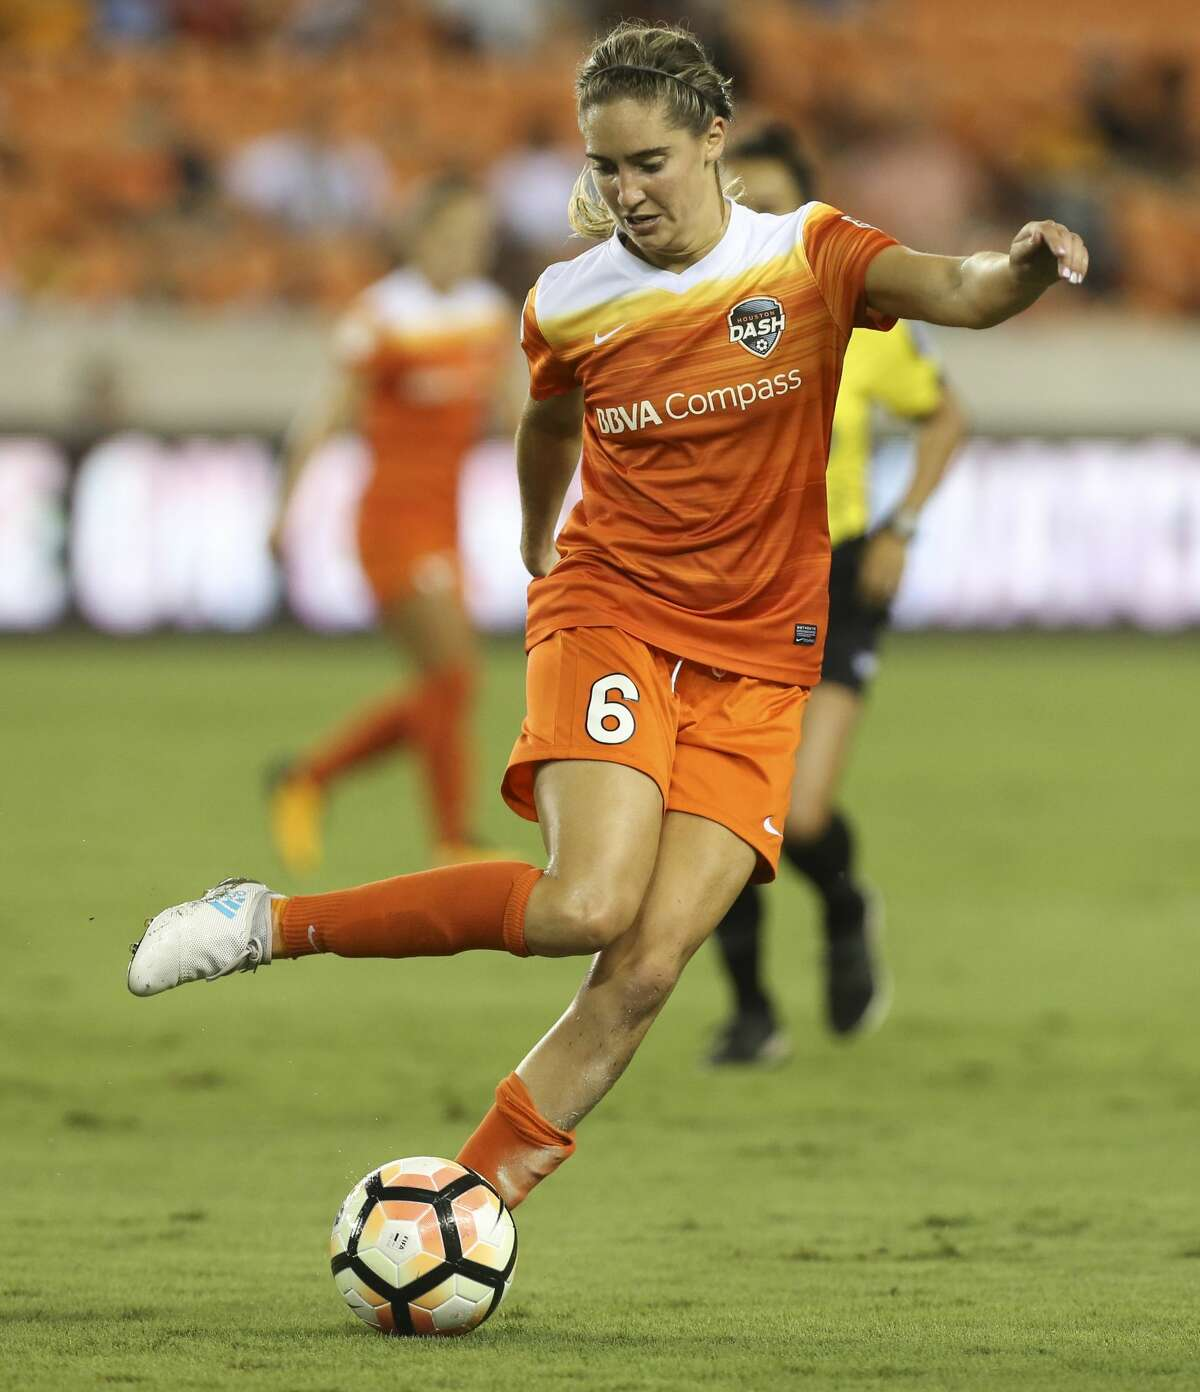 Houston Dash midfielder Morgan Brian (6) makes a pass during the first half of the game at BBVA Compass Stadium Saturday, July 22, 2017, in Houston. ( Yi-Chin Lee / Houston Chronicle )